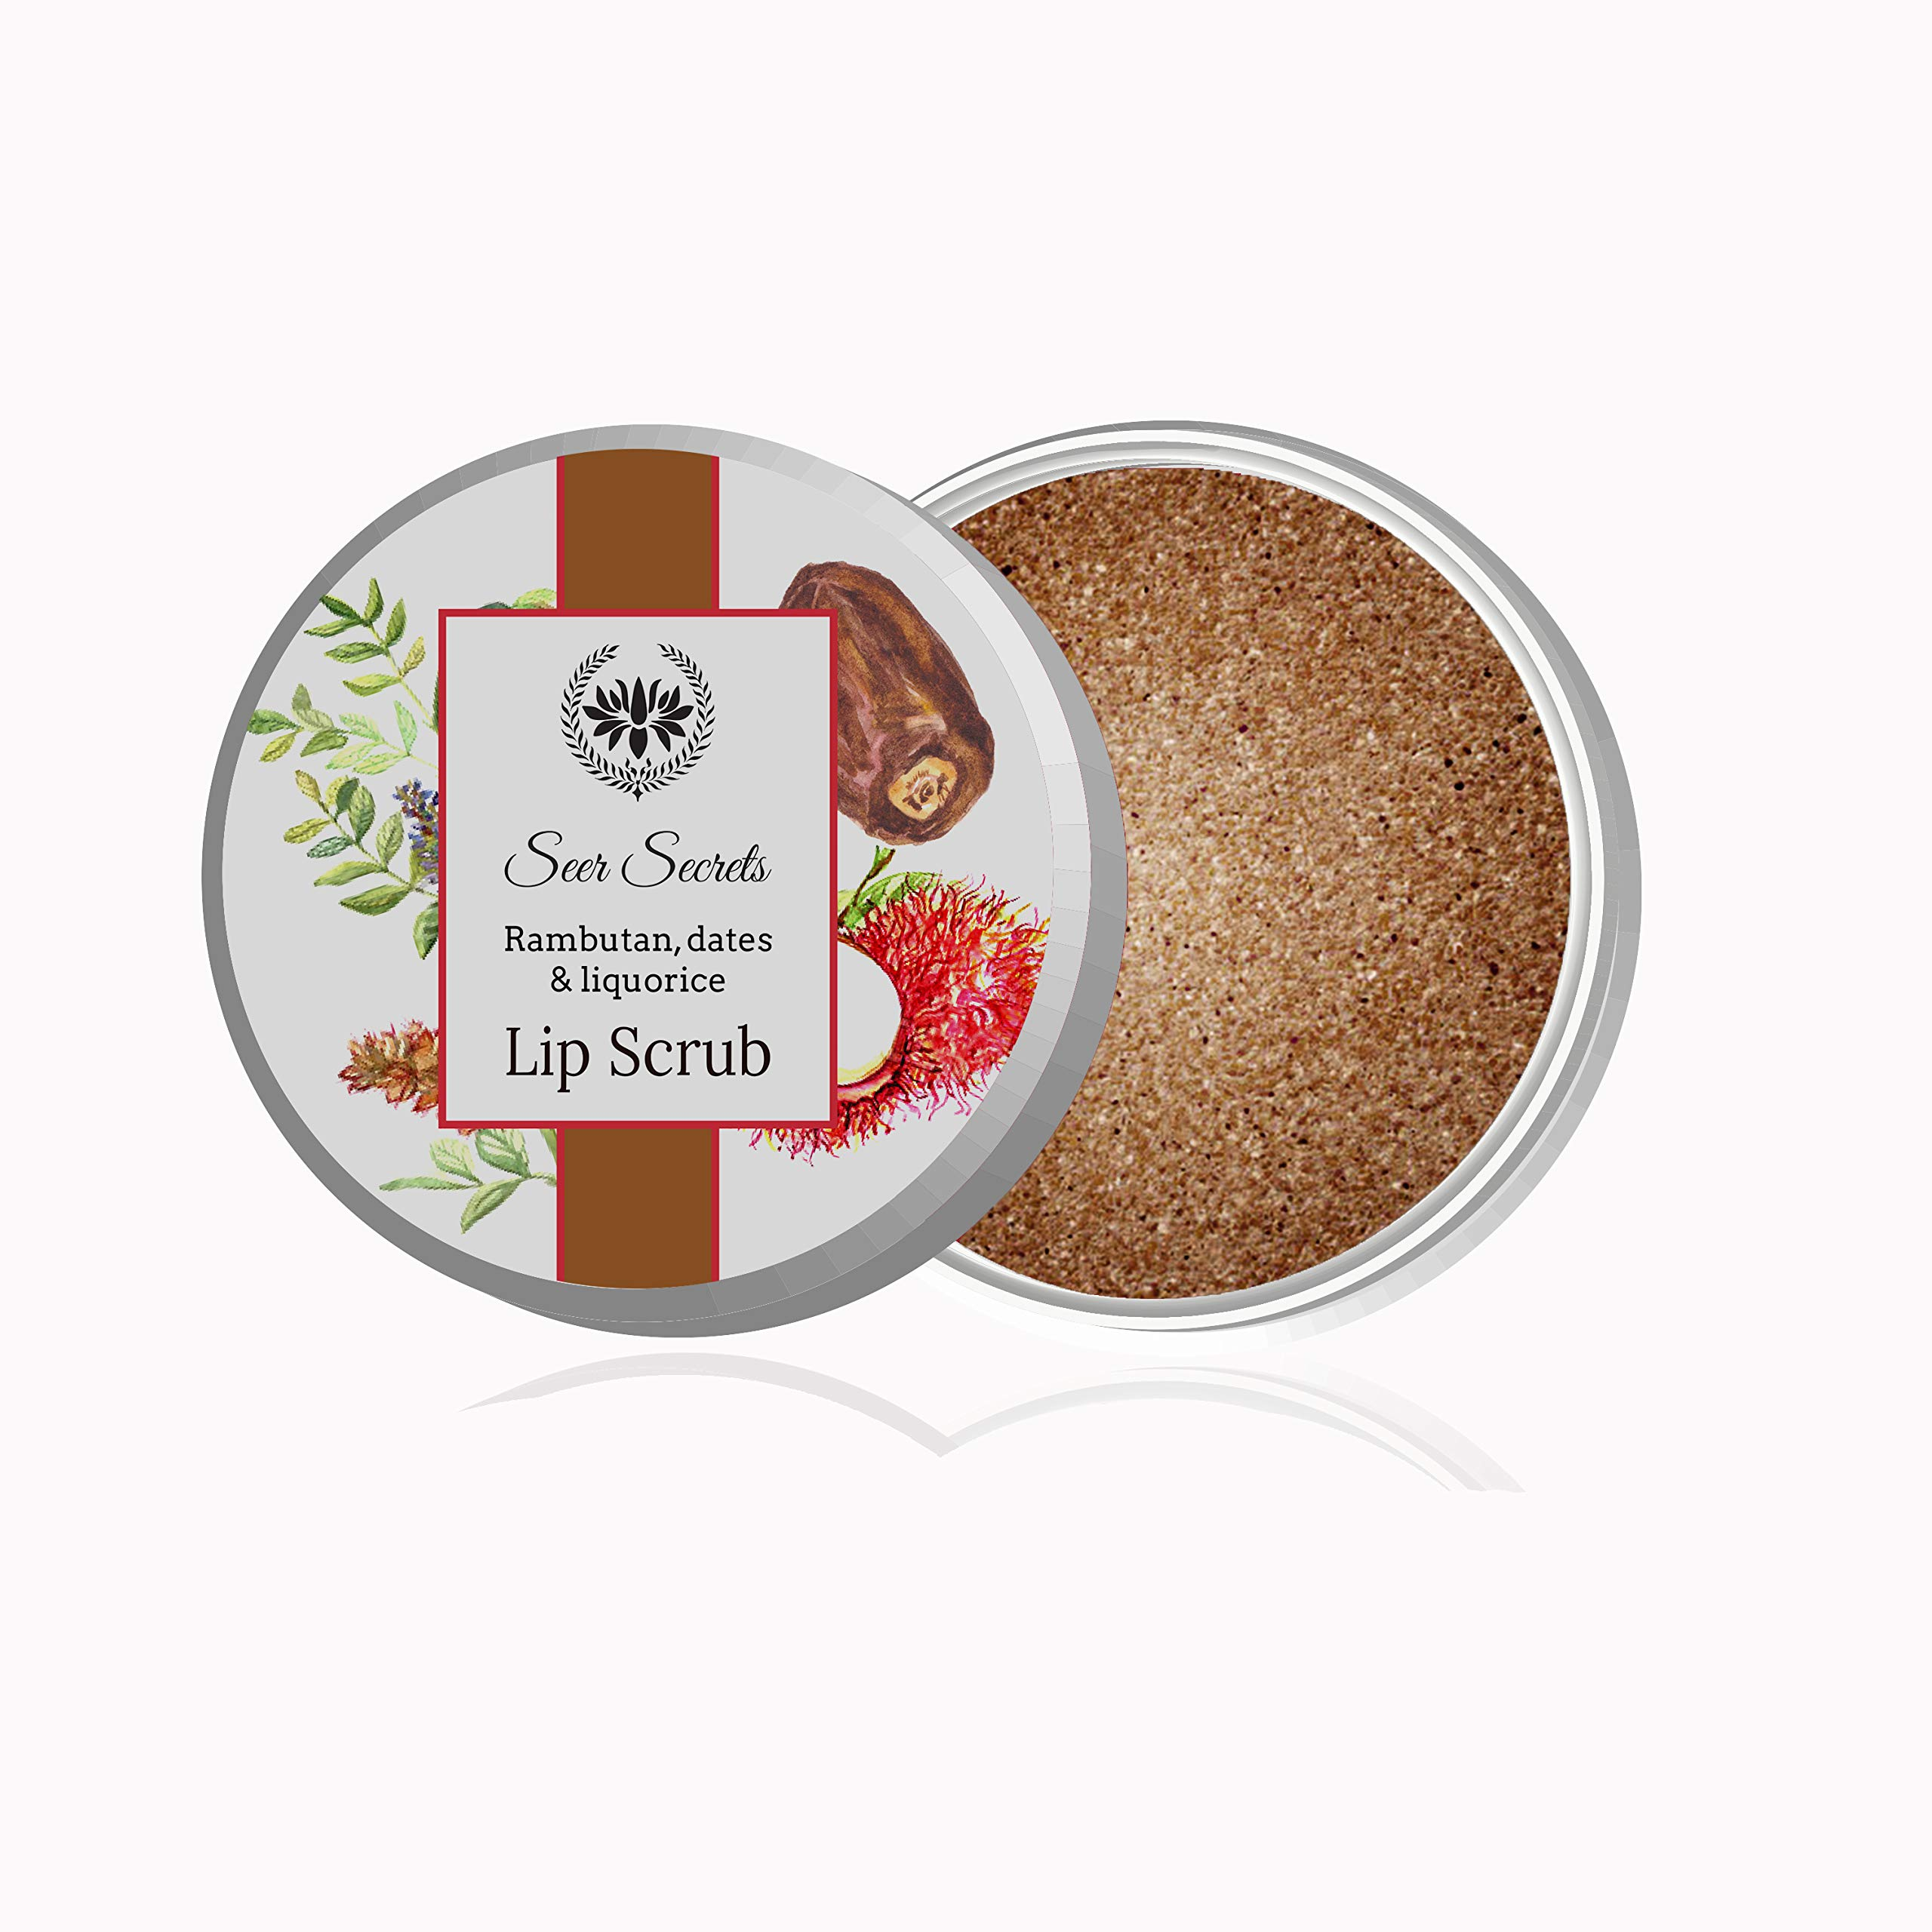 Seer Secrets Lip Scrub for Chapped Lips - Natural Ingredient with Rambutan & Dates | Exfoliating & Moisturizes for Dry Lips (0.28 Ounces) for Him Her